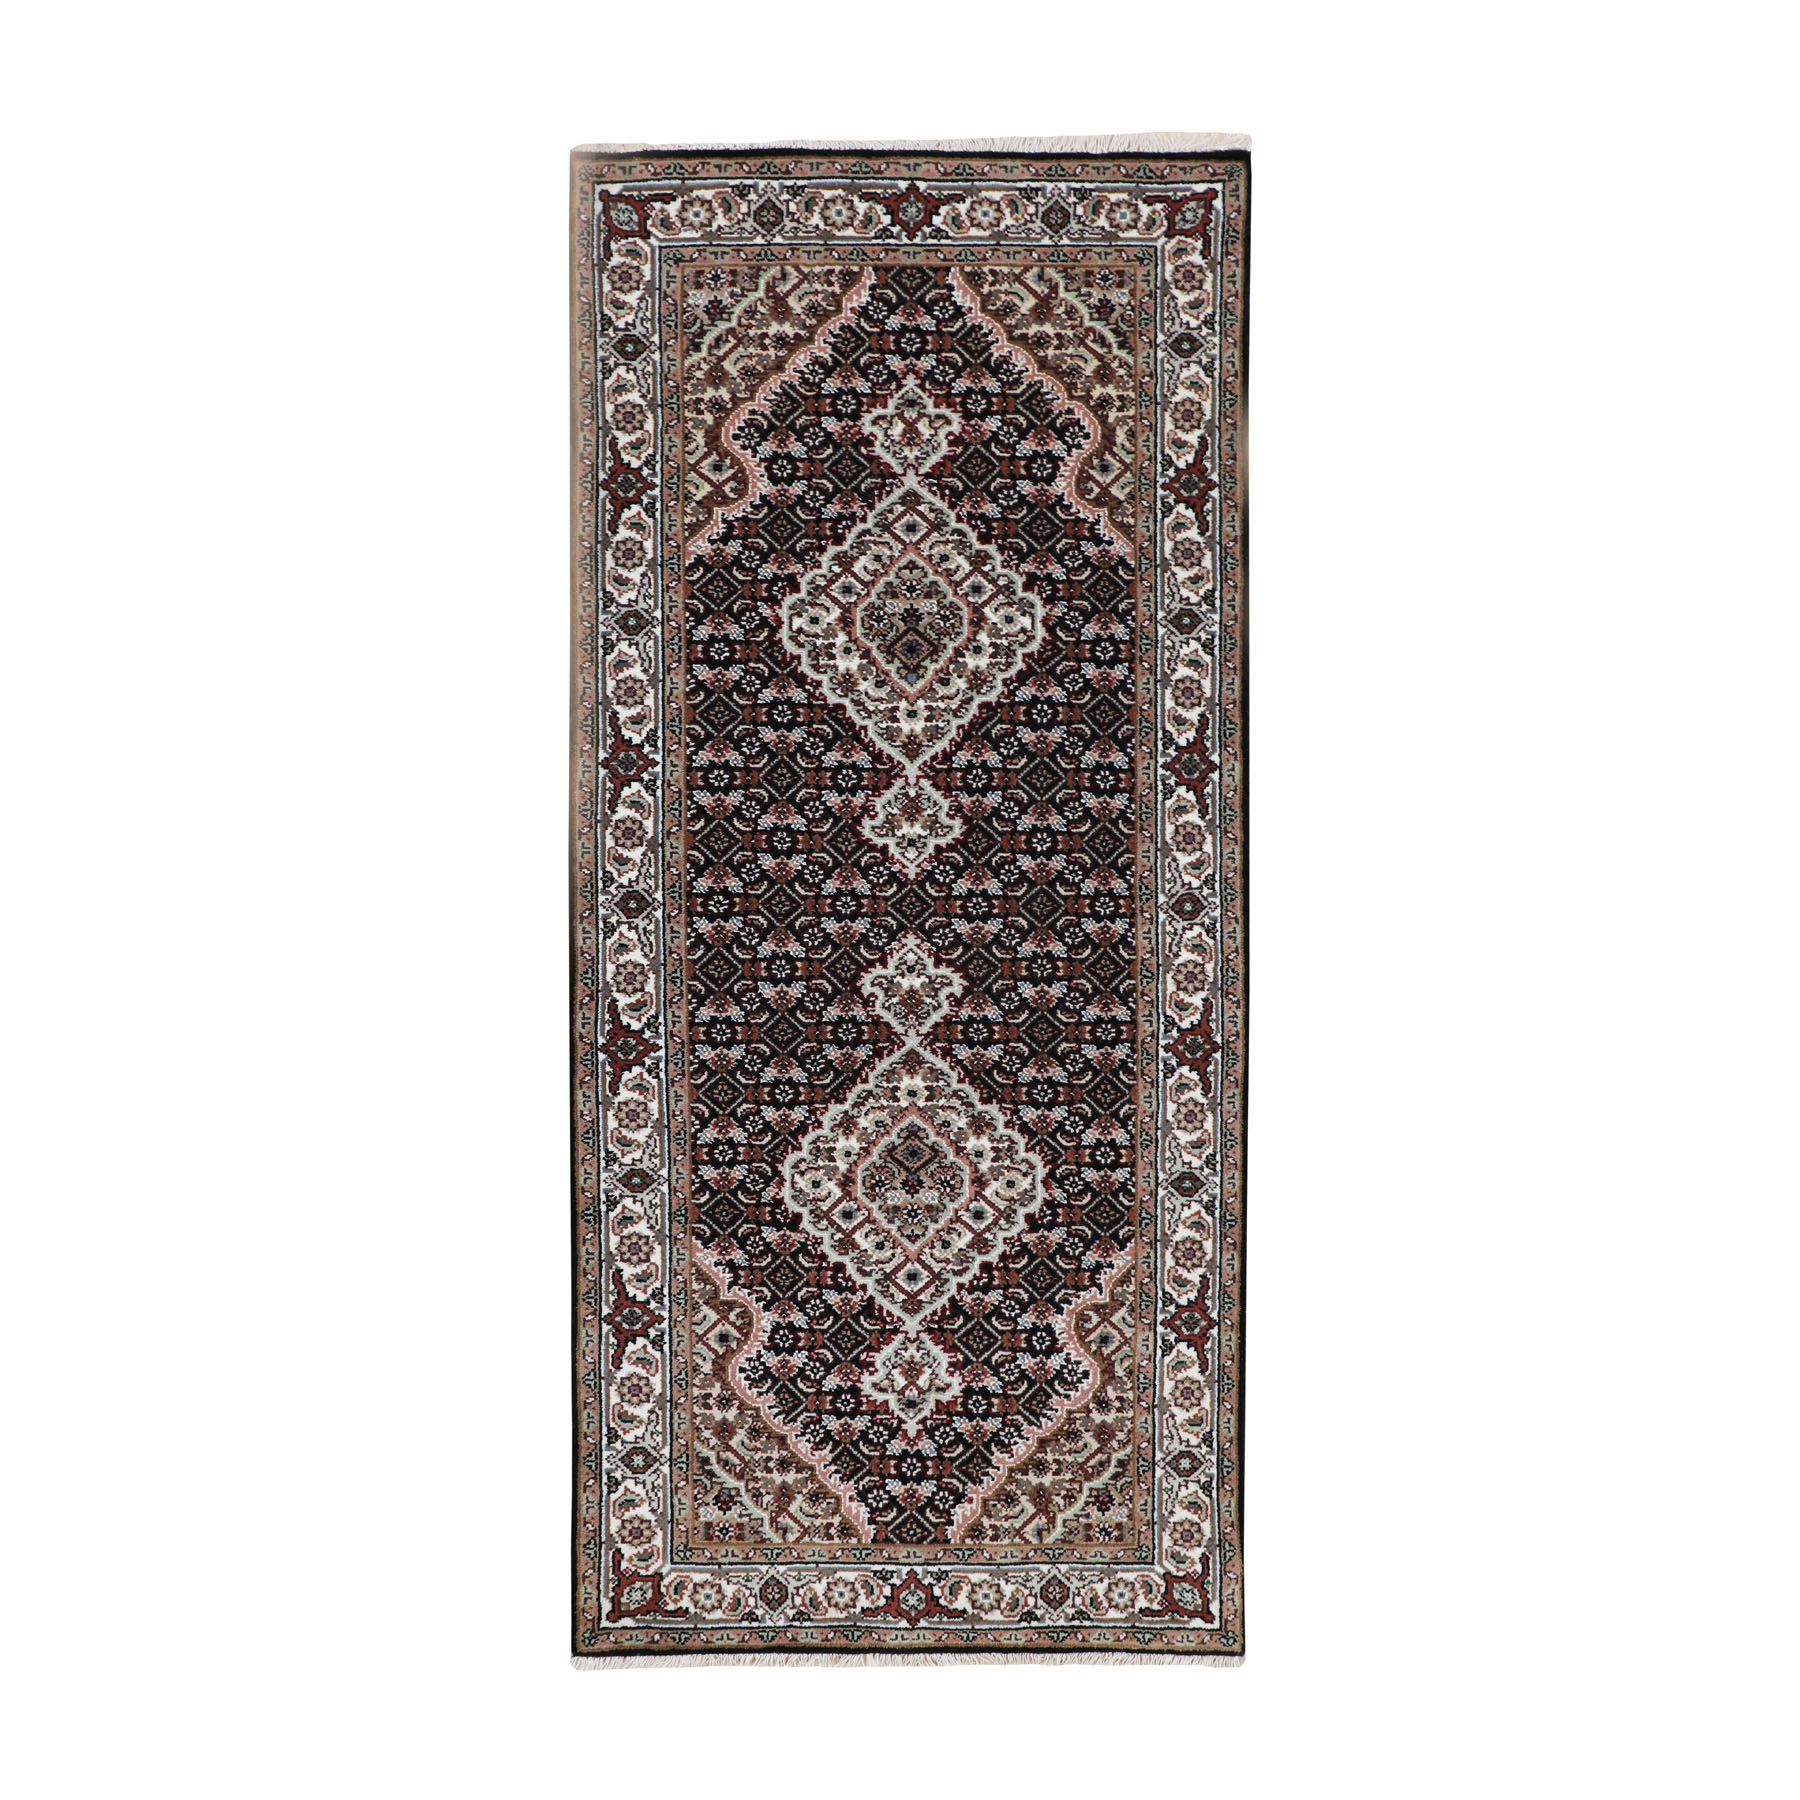 "2'8""x6'2"" Black Tabriz Mahi Fish Design Wool And Silk Runner Hand Woven Oriental Rug"